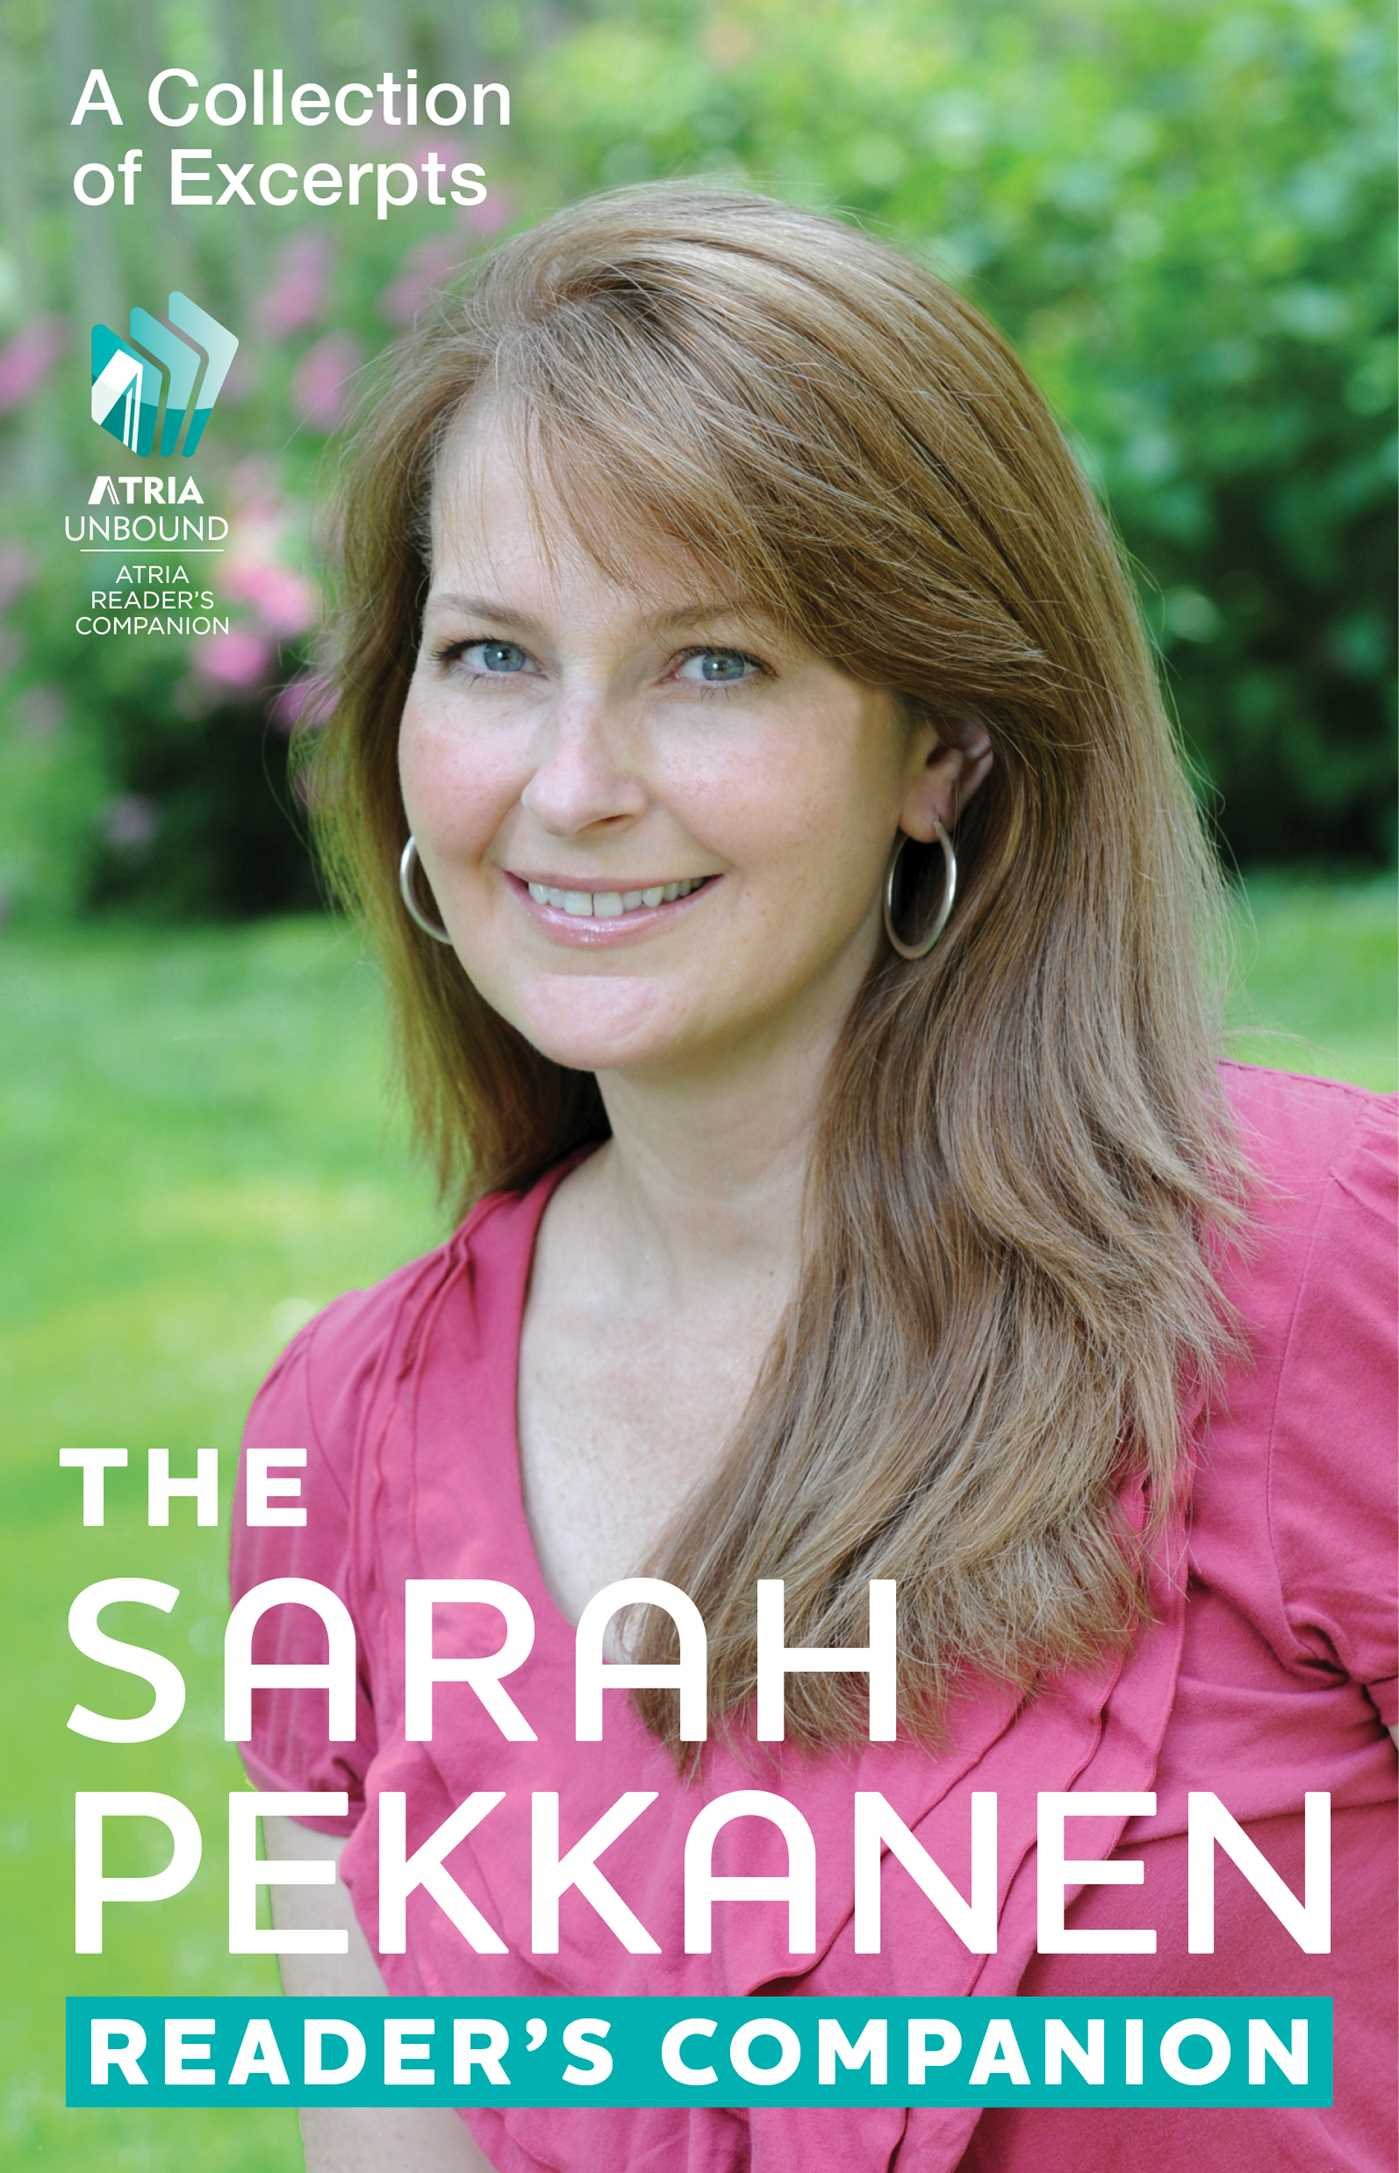 The sarah pekkanen readers companion 9781476727882 hr